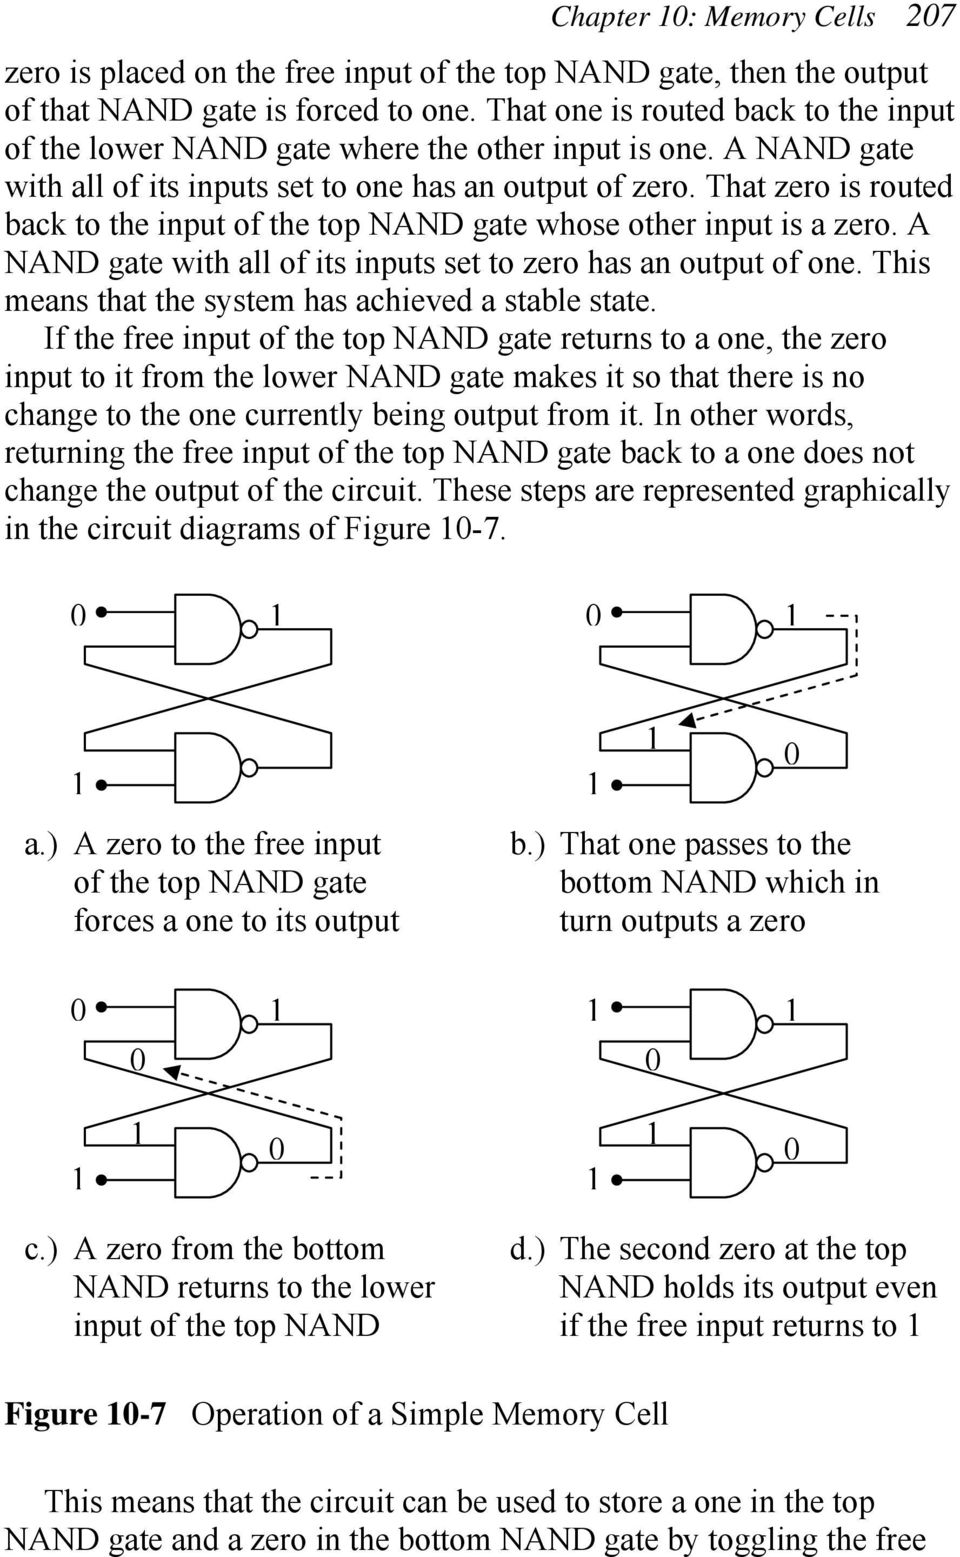 That zero is routed back to the input of the top NAN gate whose other input is a zero. A NAN gate with all of its inputs set to zero has an output of one.